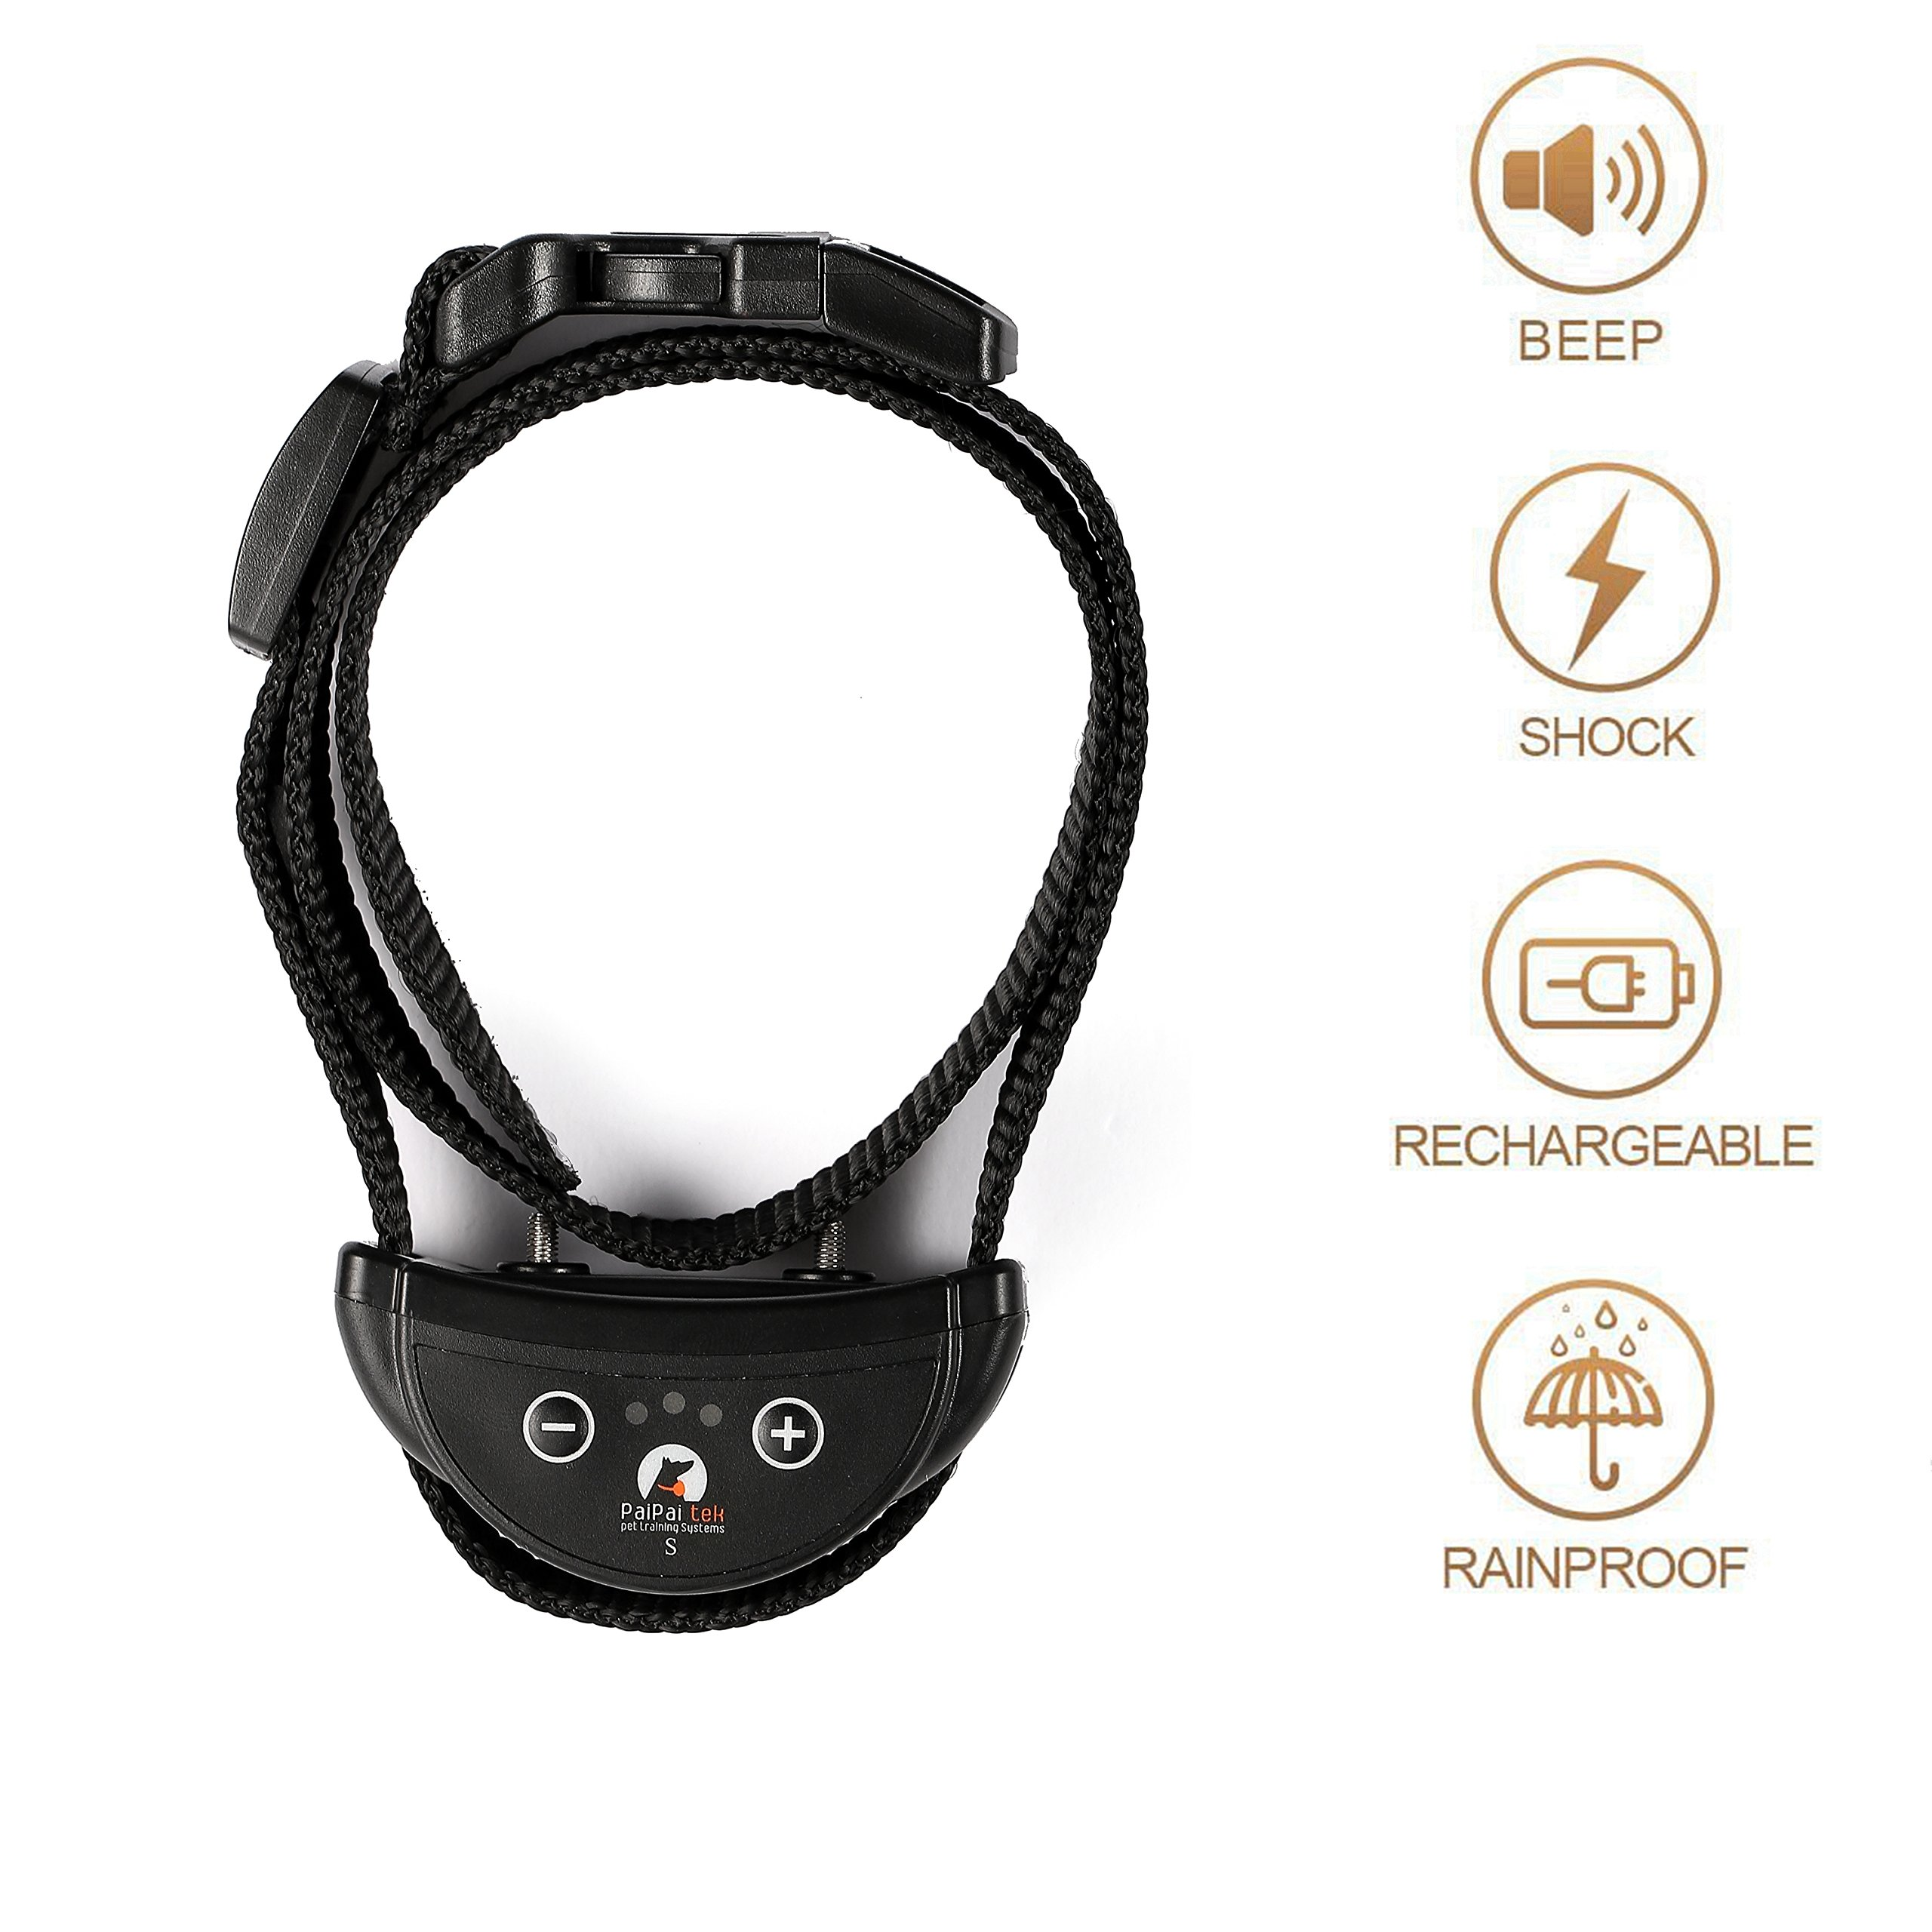 Paipaitek Pet Dog Training Collar Adjustable Sensitivity Levels, Rechargeable and Automatic Pet Dog Bark Stop Collar for Small Medium or Large Dogs (Small)